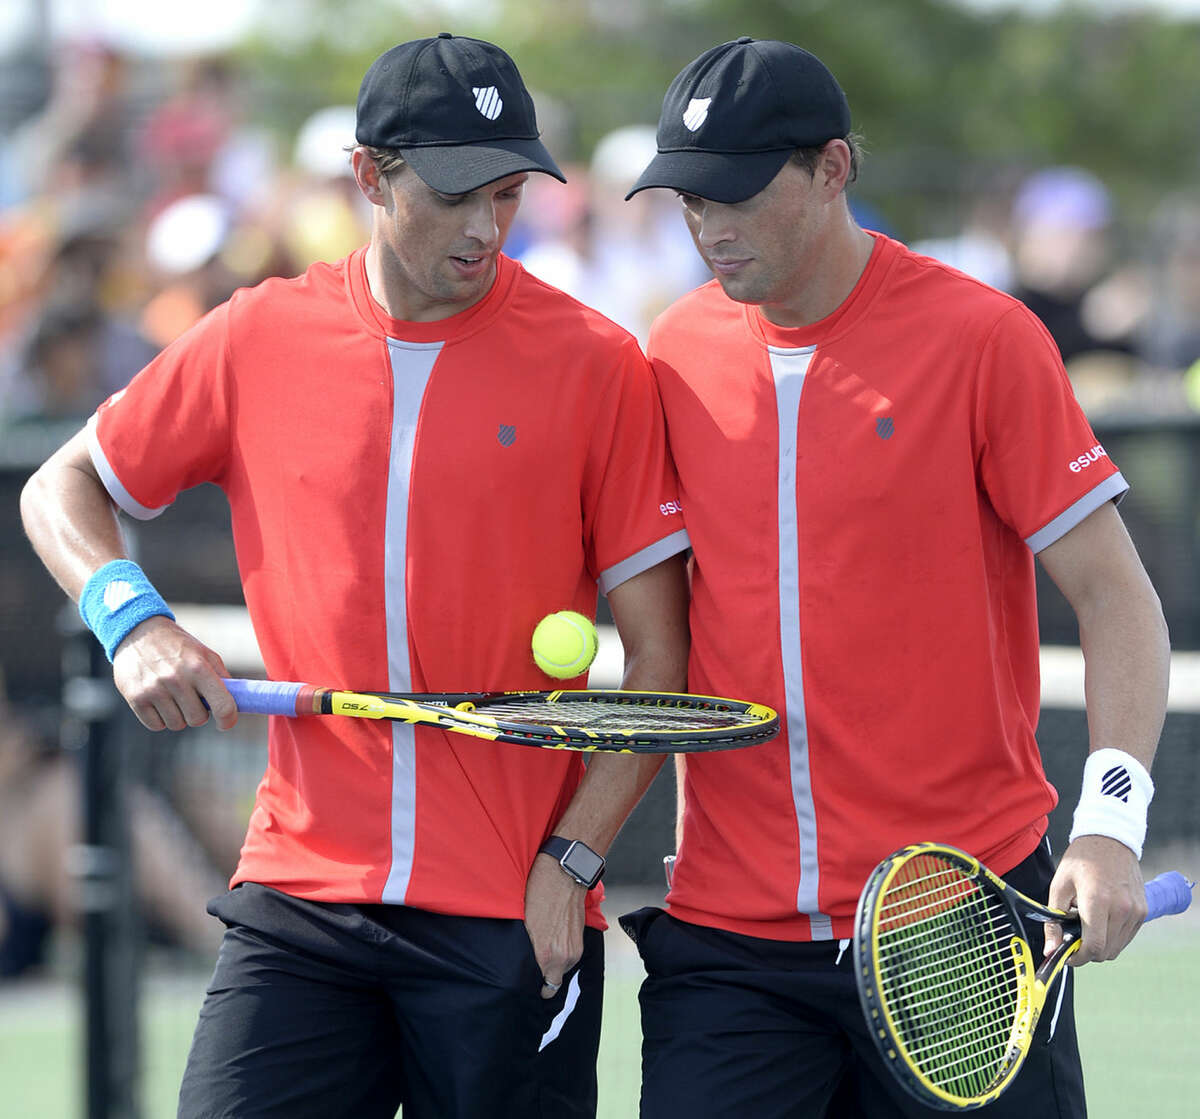 Mike Bryan (left) and his brother, Bob Bryan (right) put on a doubles exhibition during the West Texas Tennis Classic on Saturday, Sept. 26, 2015, at Bush Tennis Center. James Durbin/Reporter-Telegram